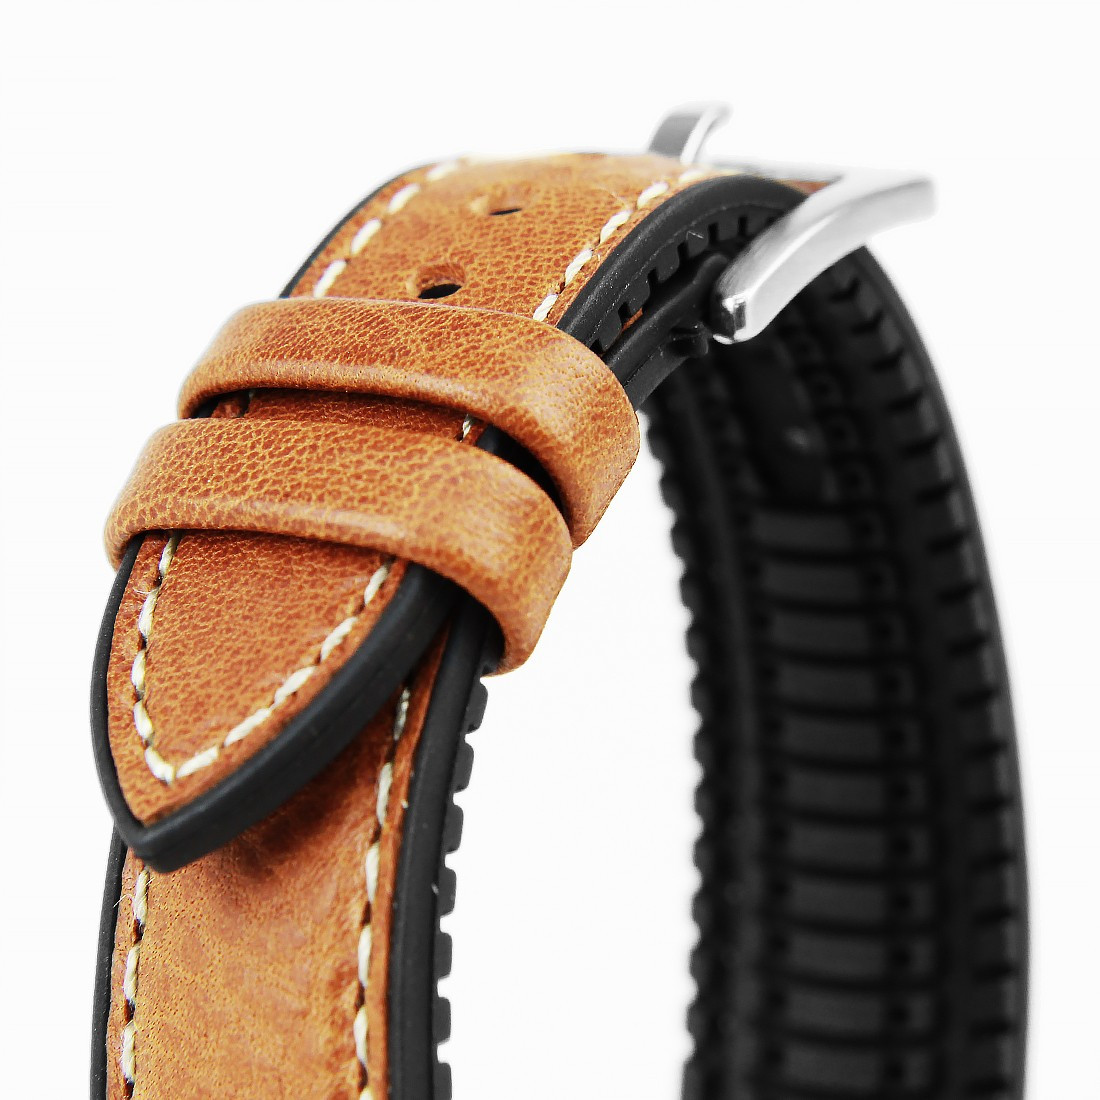 22mm Light Brown Leather Hybrid Black Rubber Watch Strap 22a8013 03 Italian Leather